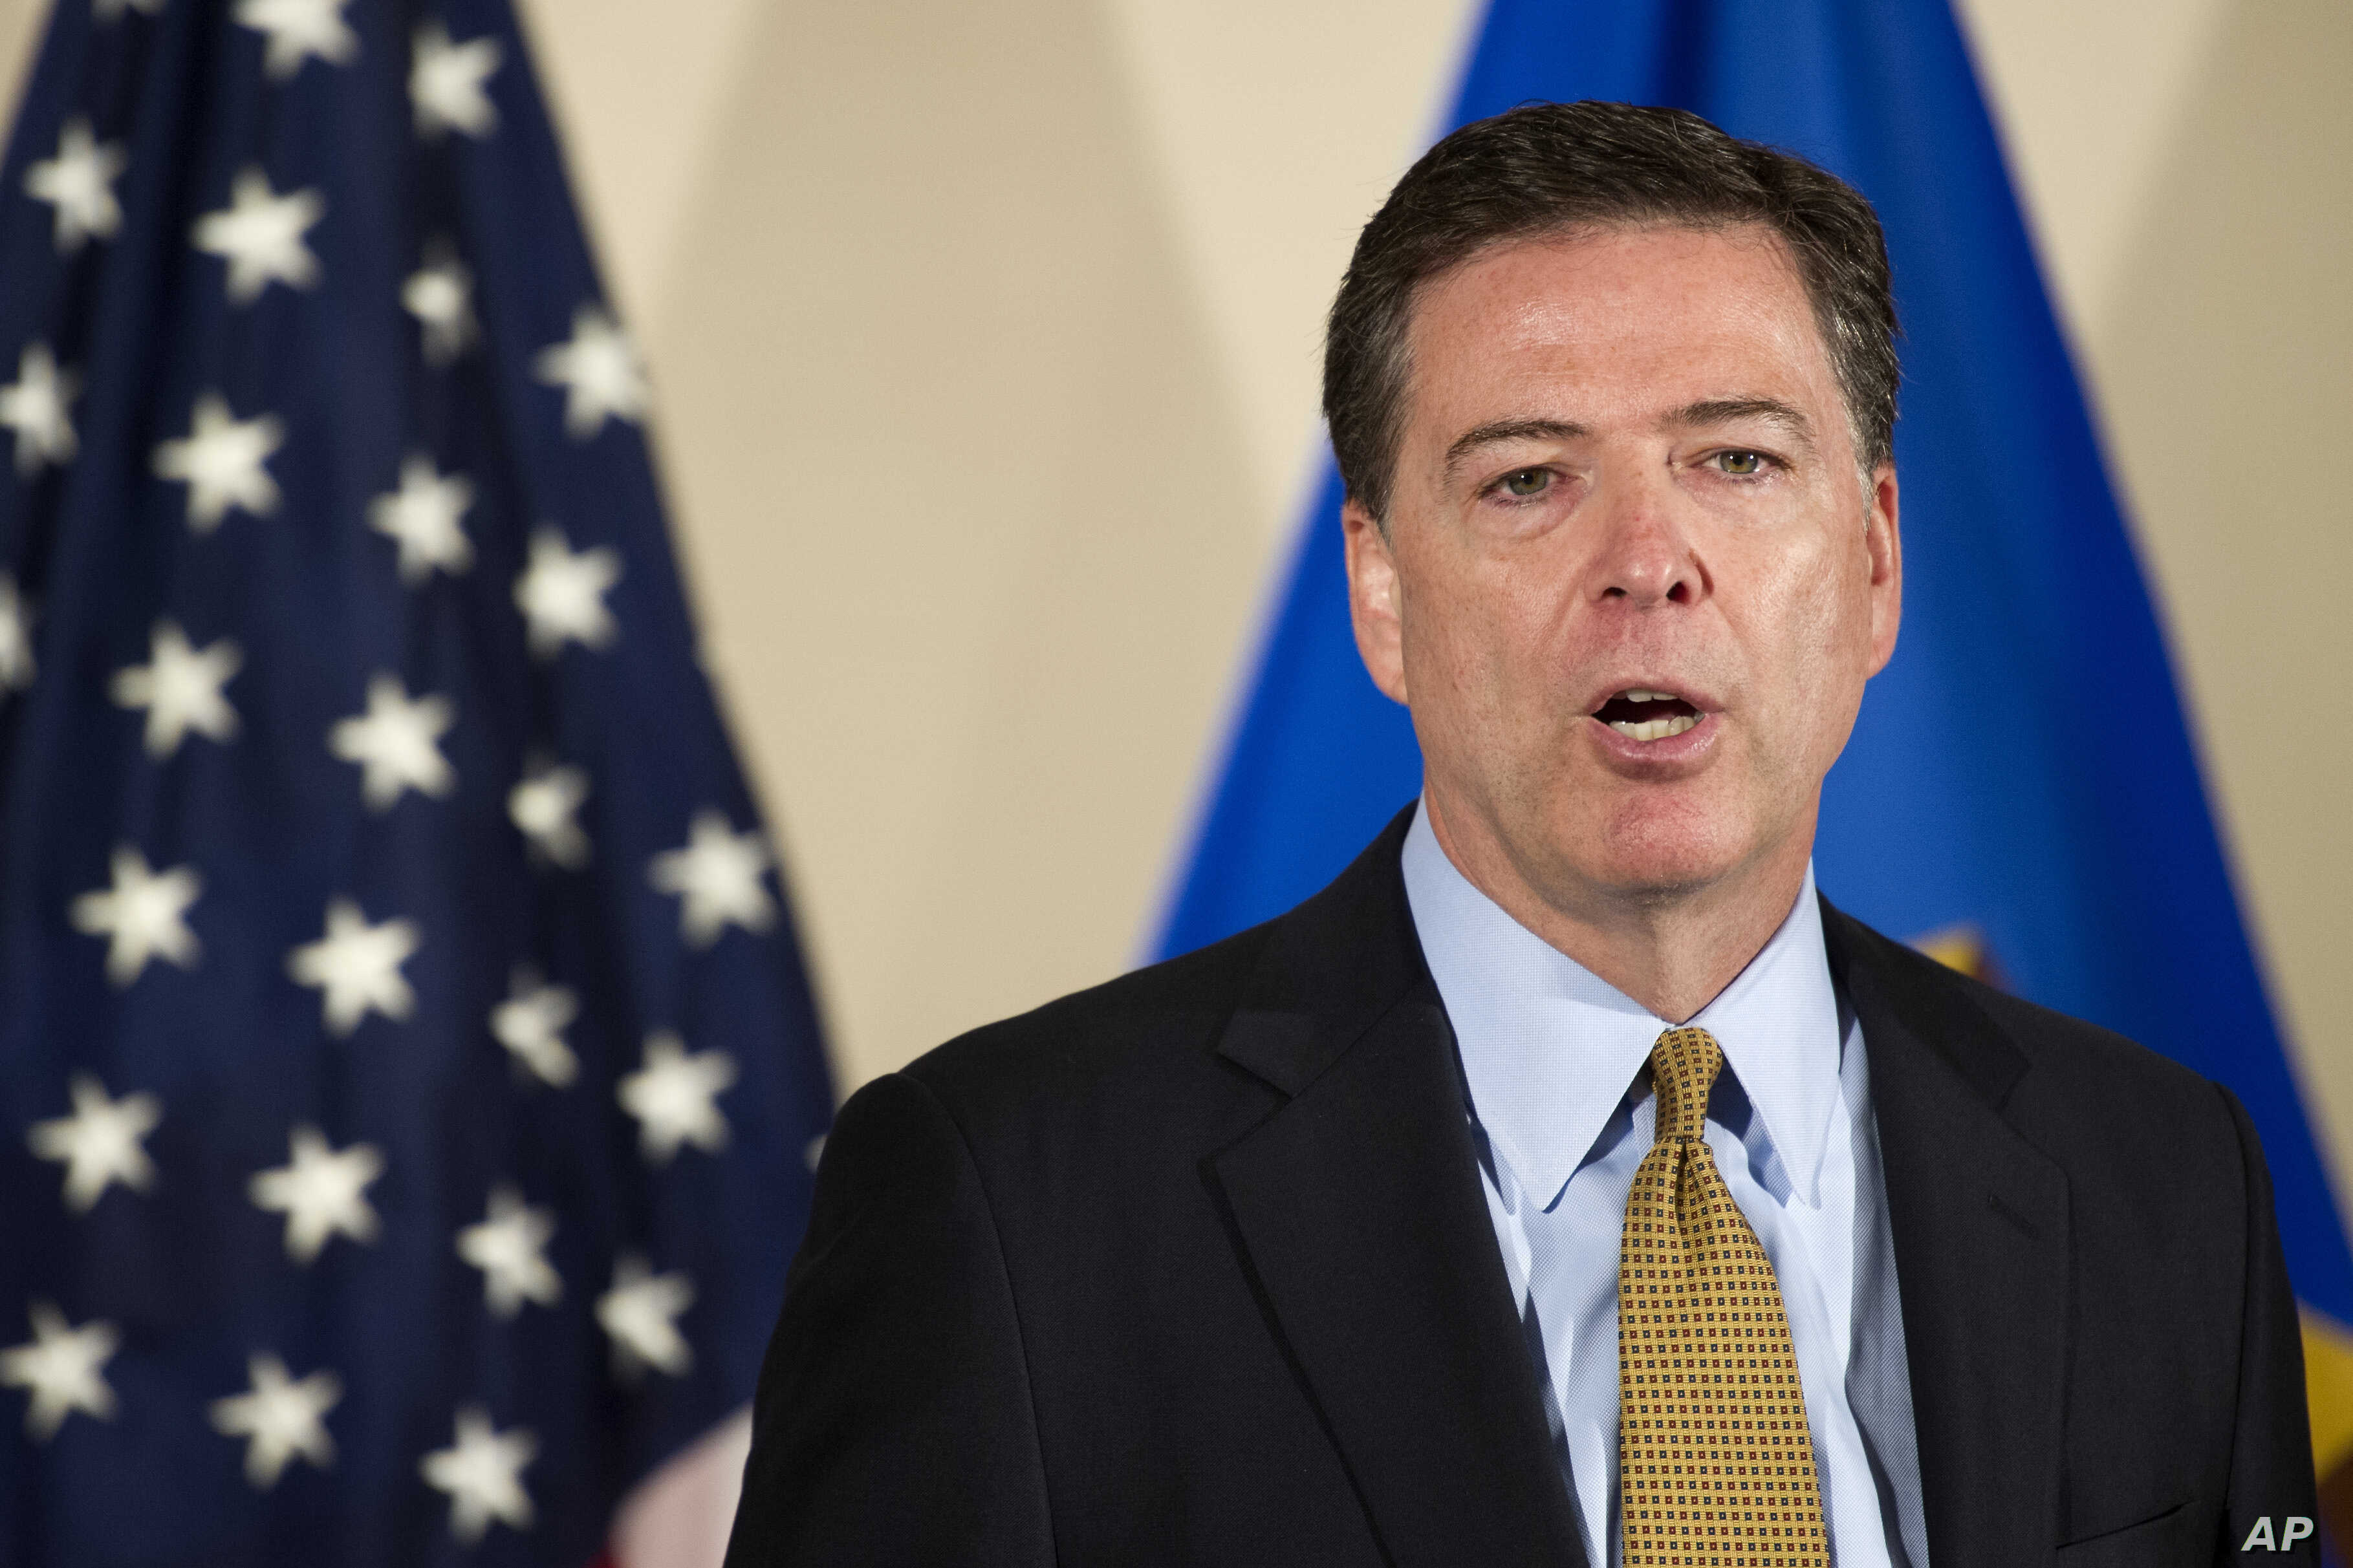 FBI Director James Comey makes a statement at FBI Headquarters in Washington, July 5, 2016.